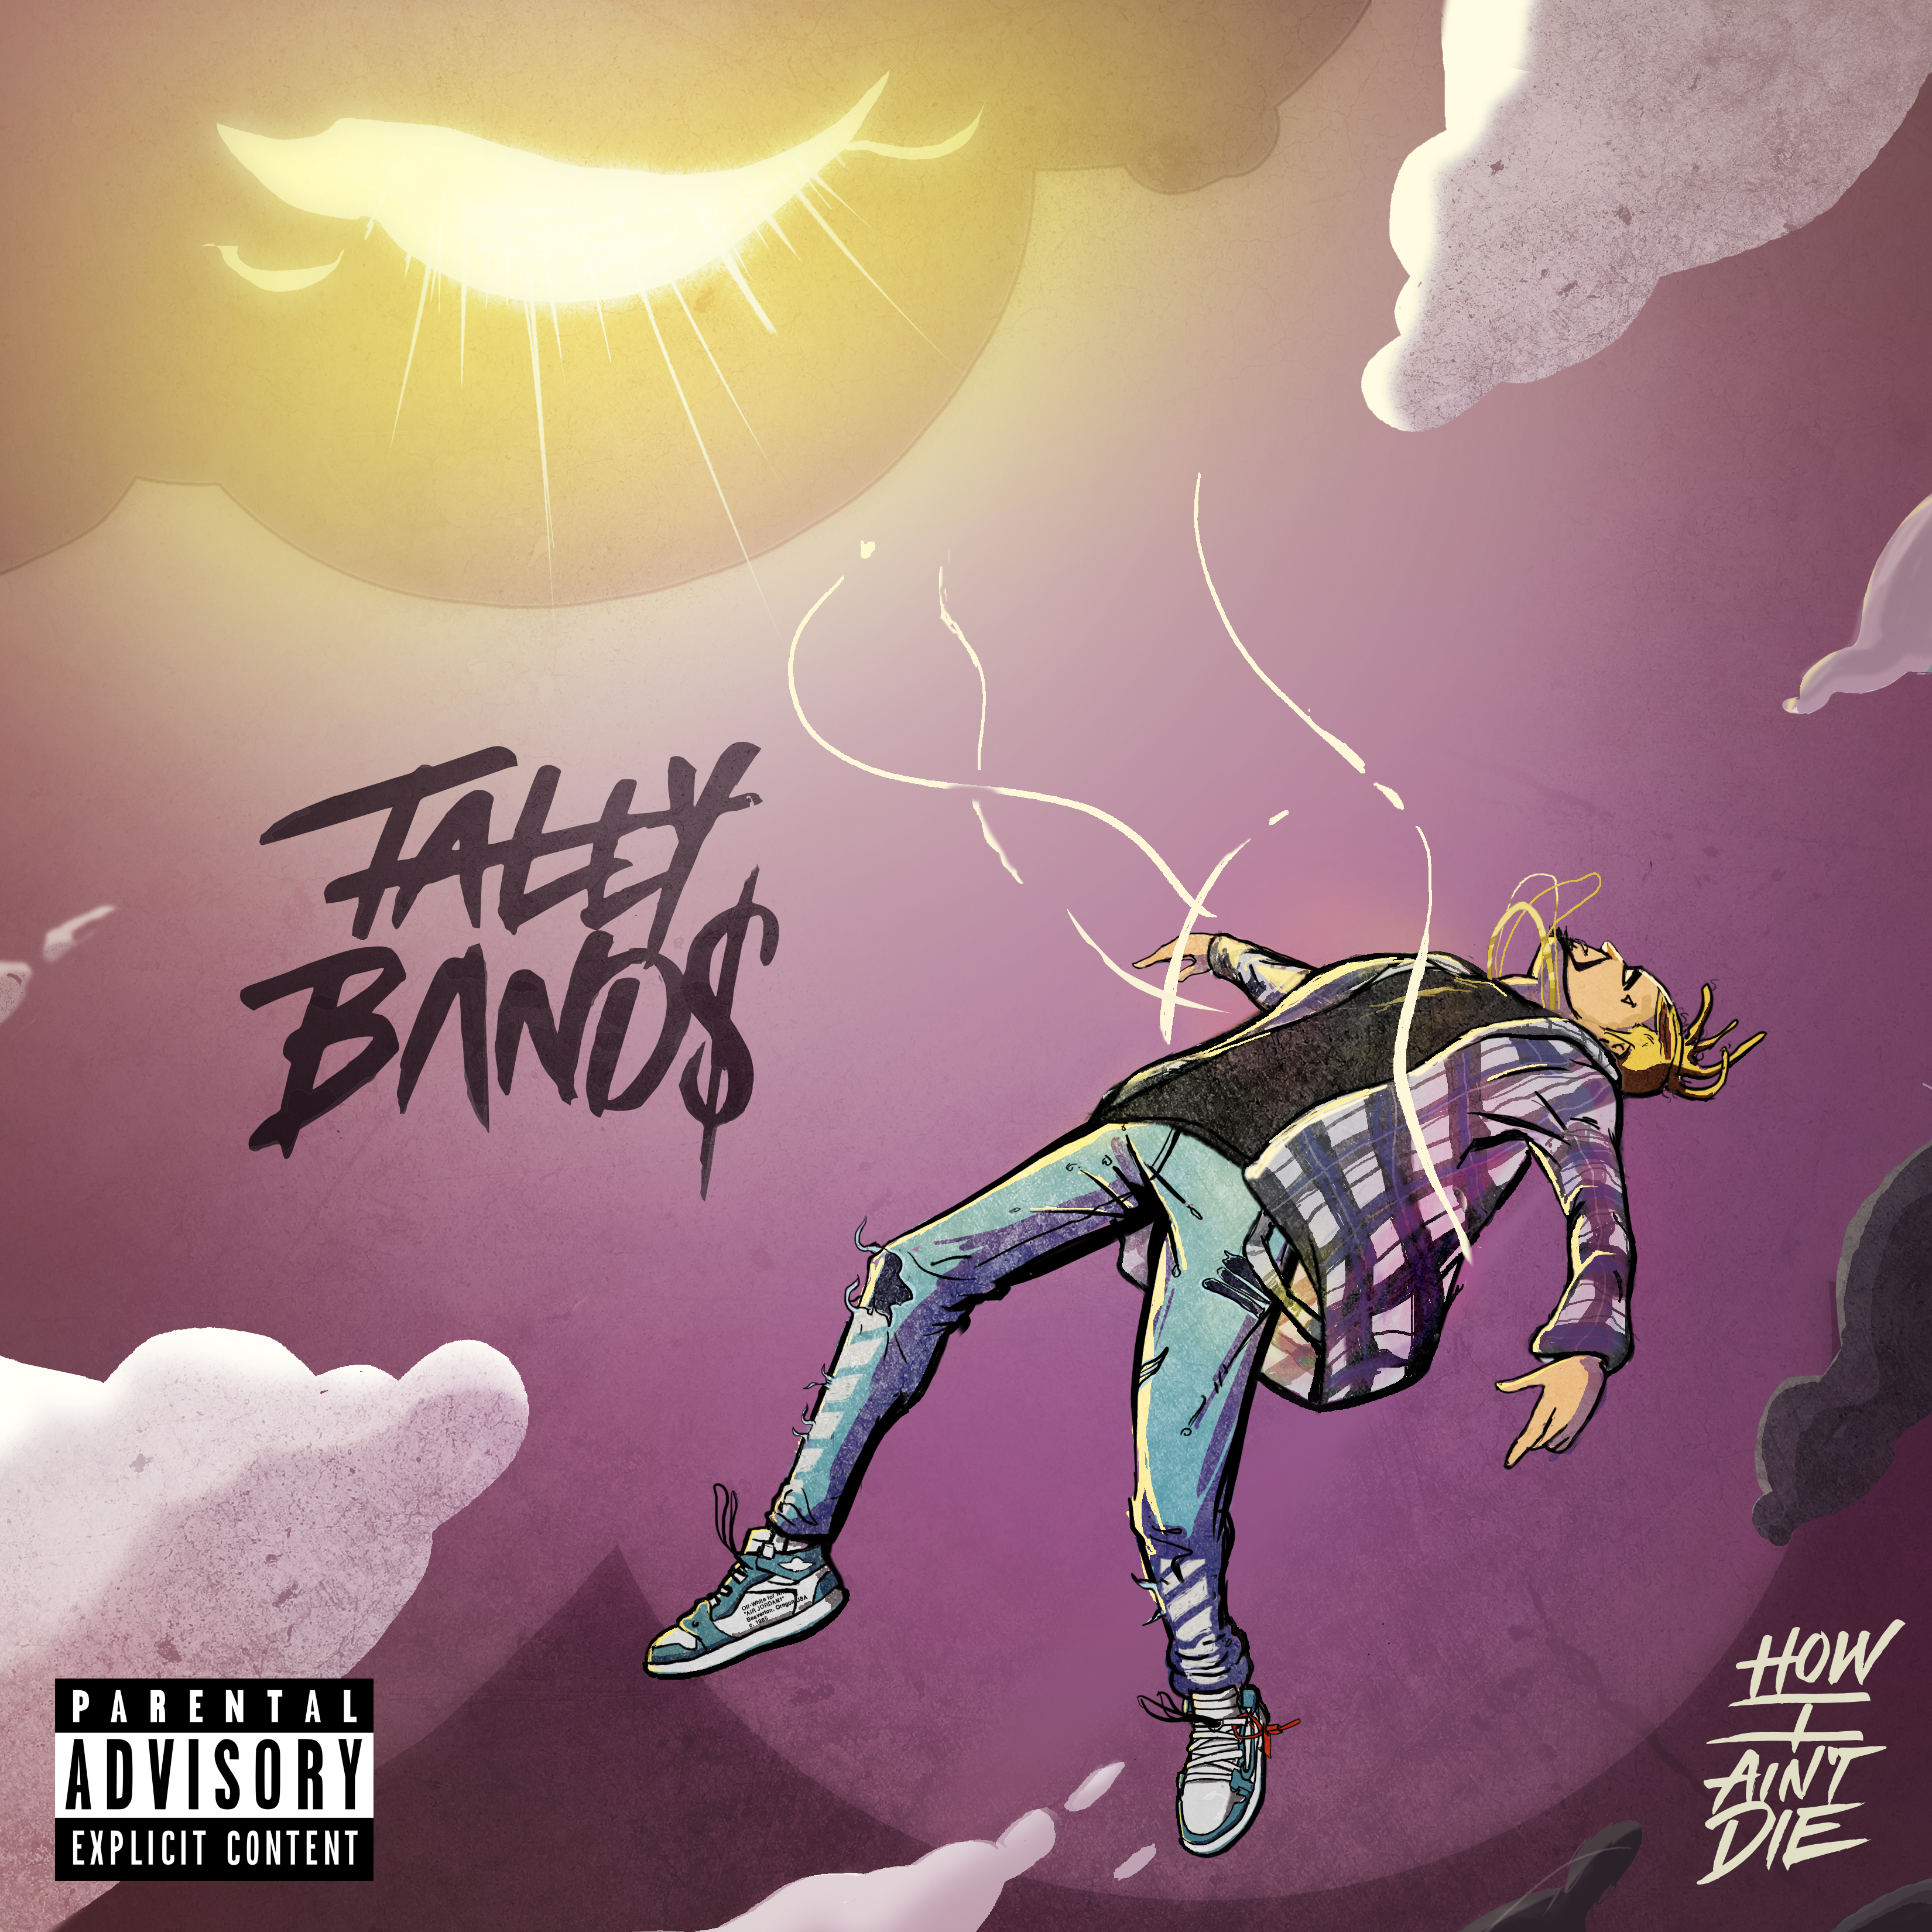 "New Music: Tally Bands – ""H.I.A.D. (How I Ain't Die)"""